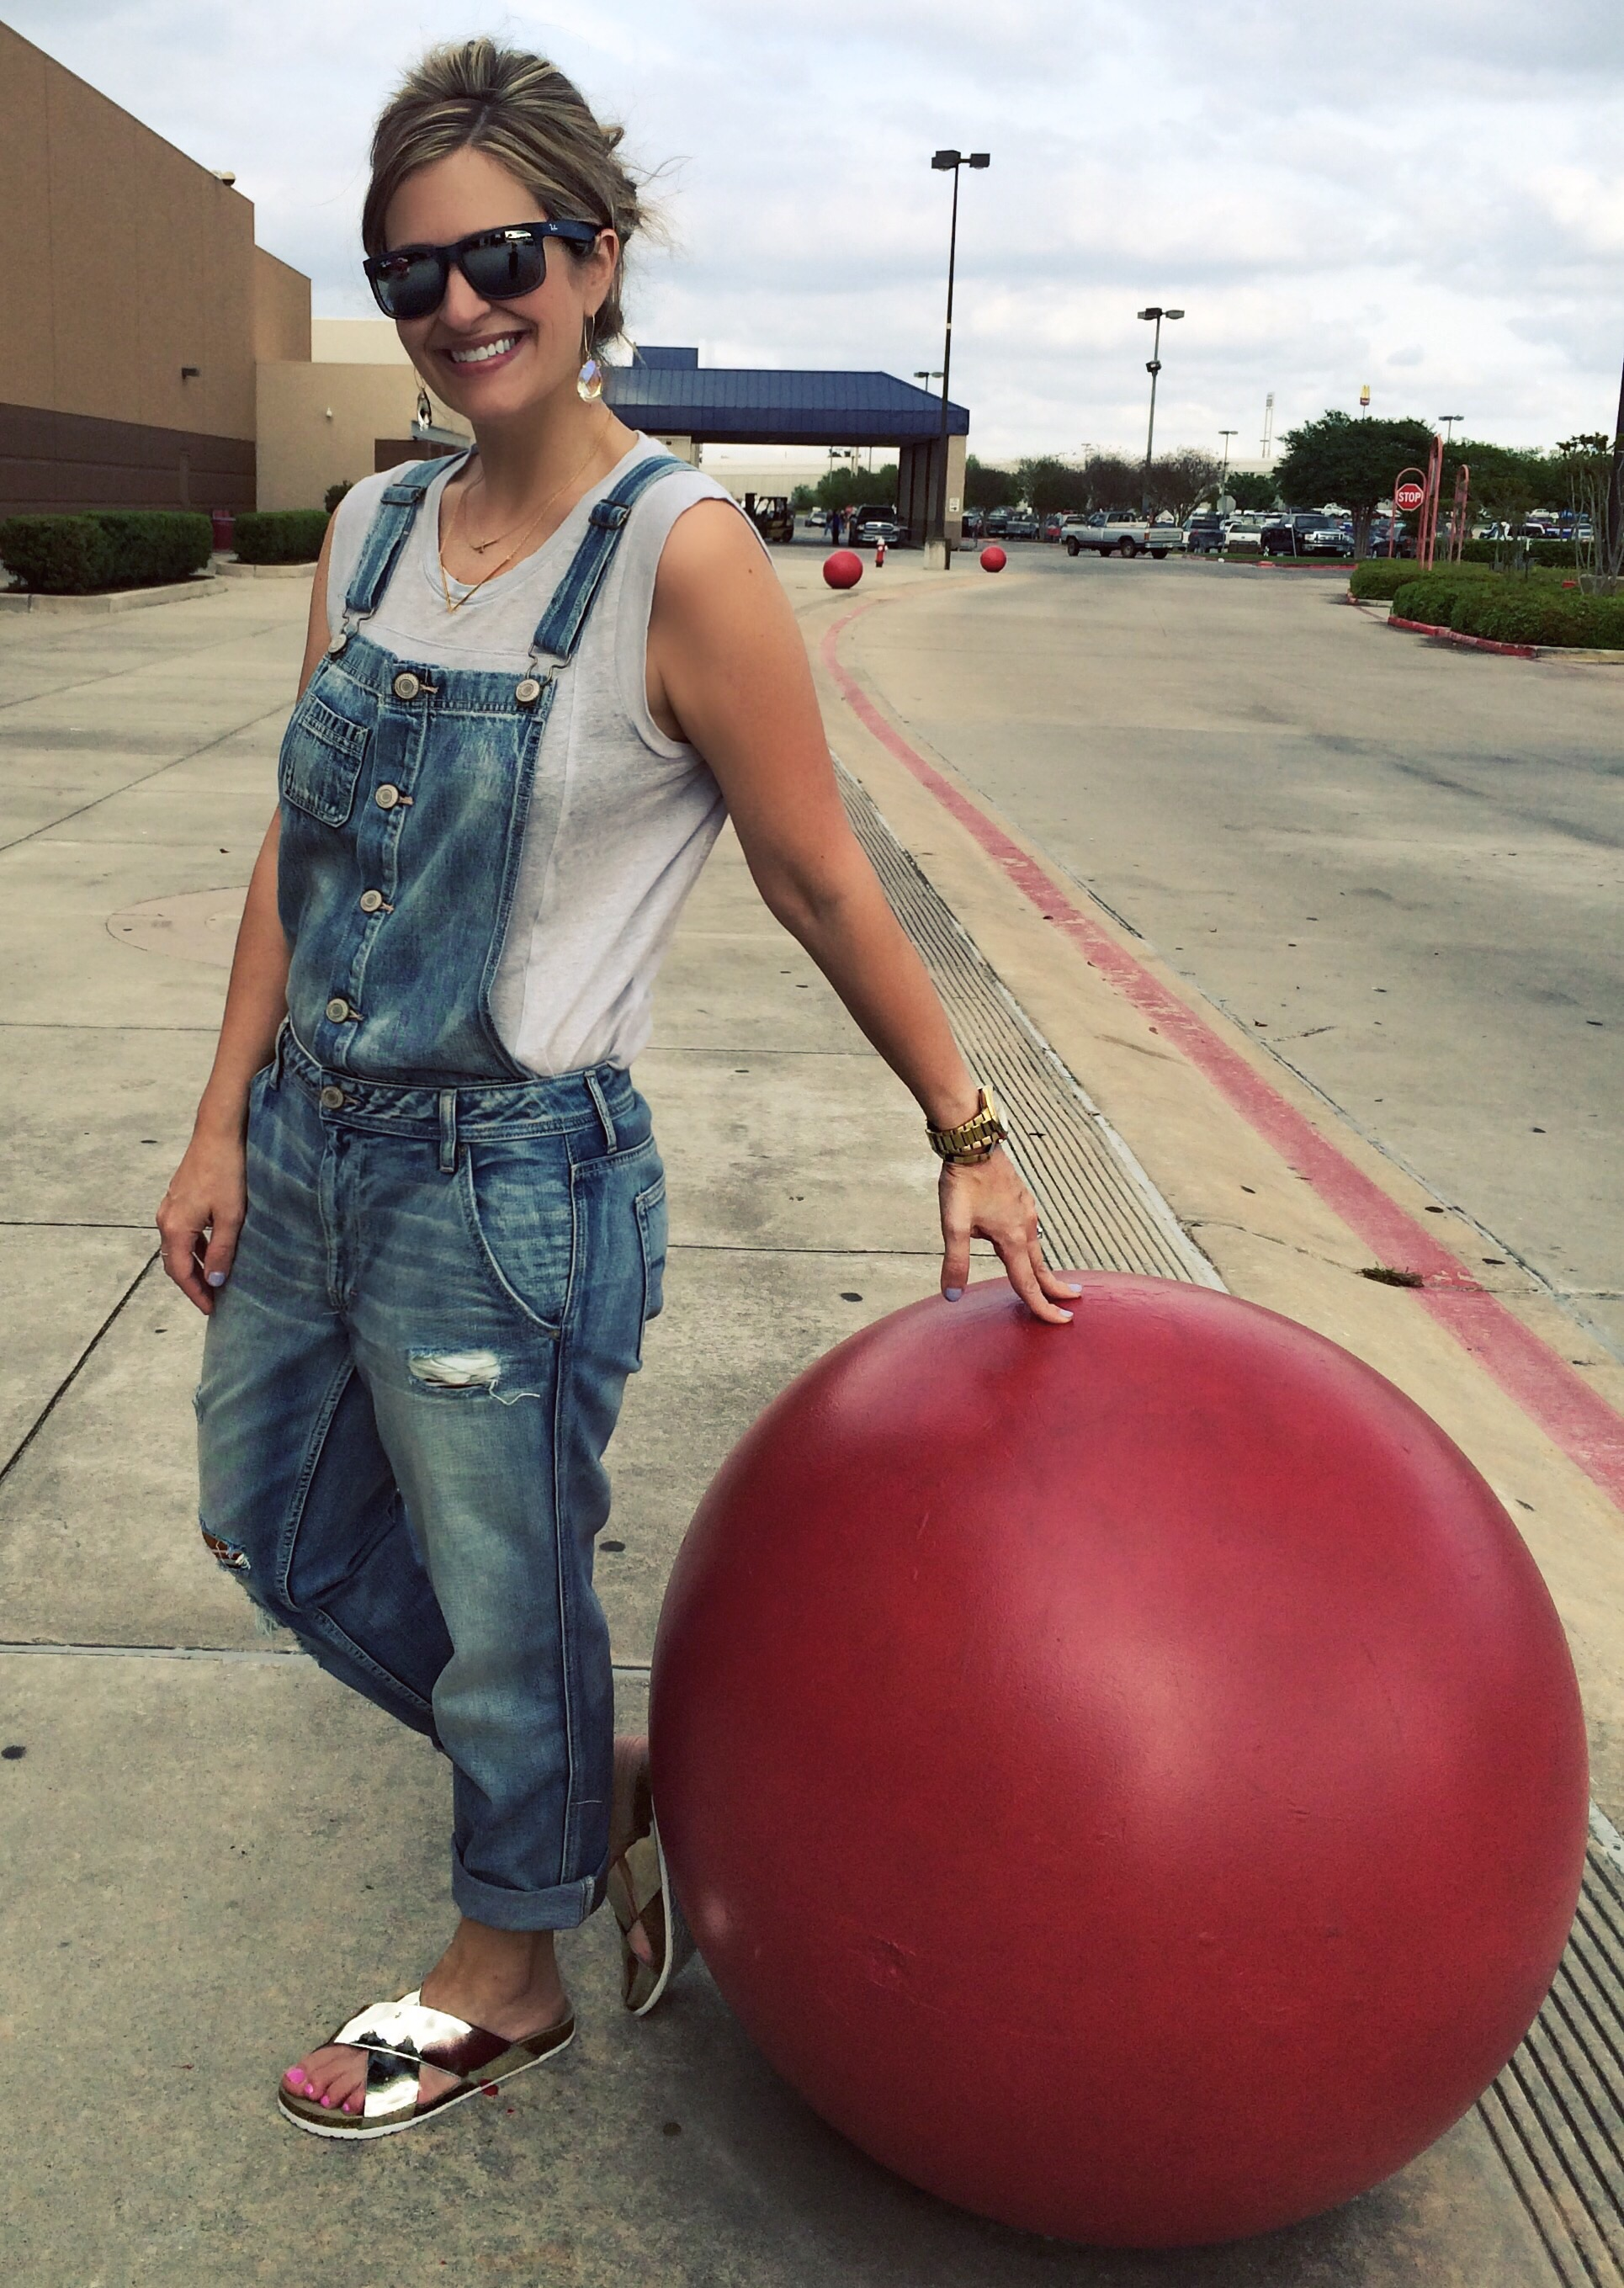 I can spot these red cement balls from any highway! Overalls:  American Eagle  Tee: Gap (last year similar  here ) Sandals:  Target  Earrings: Kendra Scott (sold out similar  here )